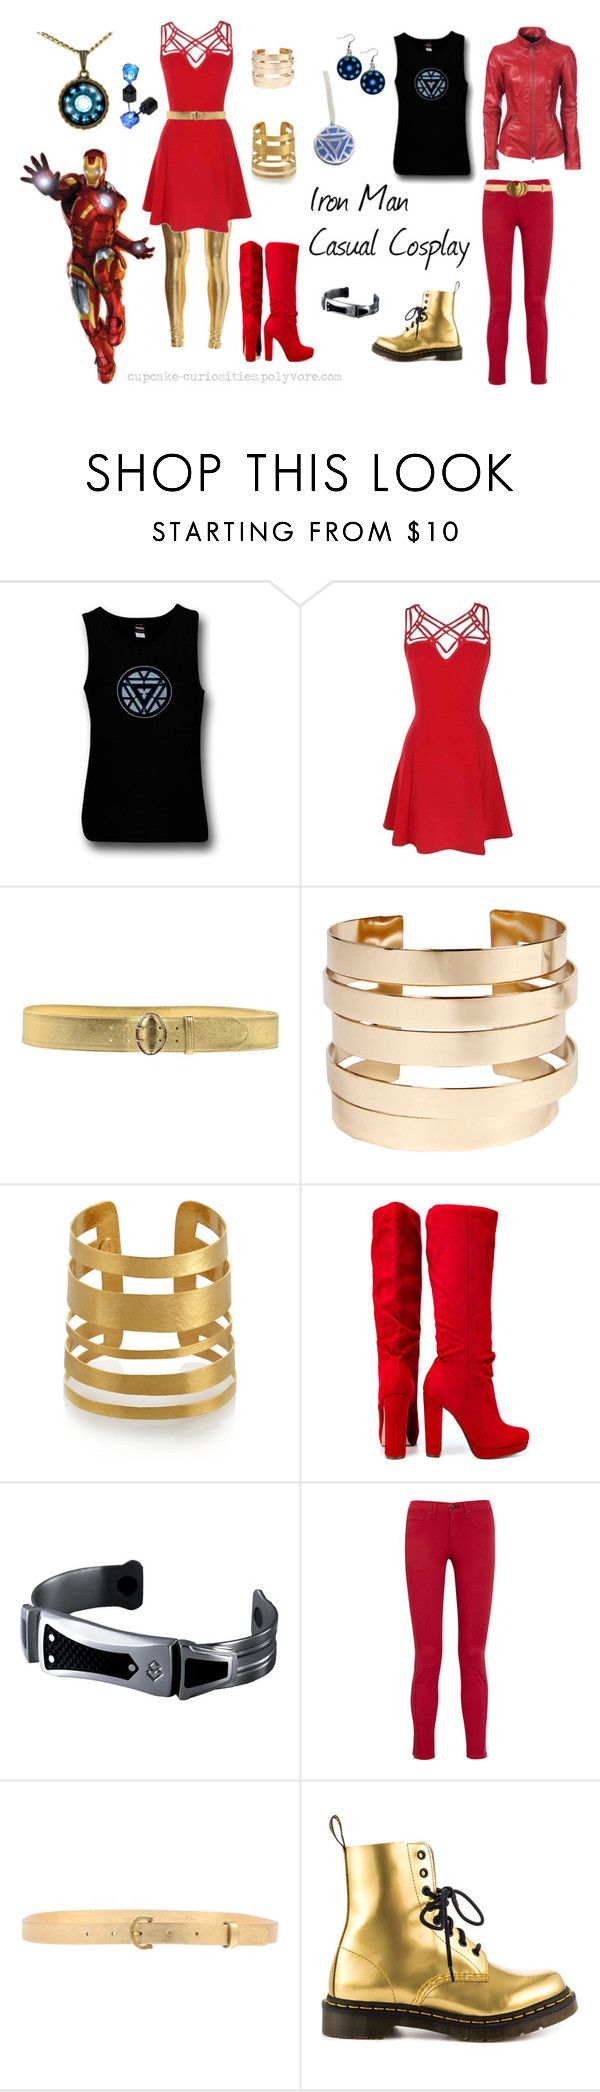 """Iron Man Casual Cosplay"" by cupcake-curiosities ❤ liked on Polyvore featuring Chanel, Prada, Boohoo, Hervé Van Der Straeten, Michael Antonio, rag & bone/JEAN, Christian Dior, Dr. Martens and Danier"